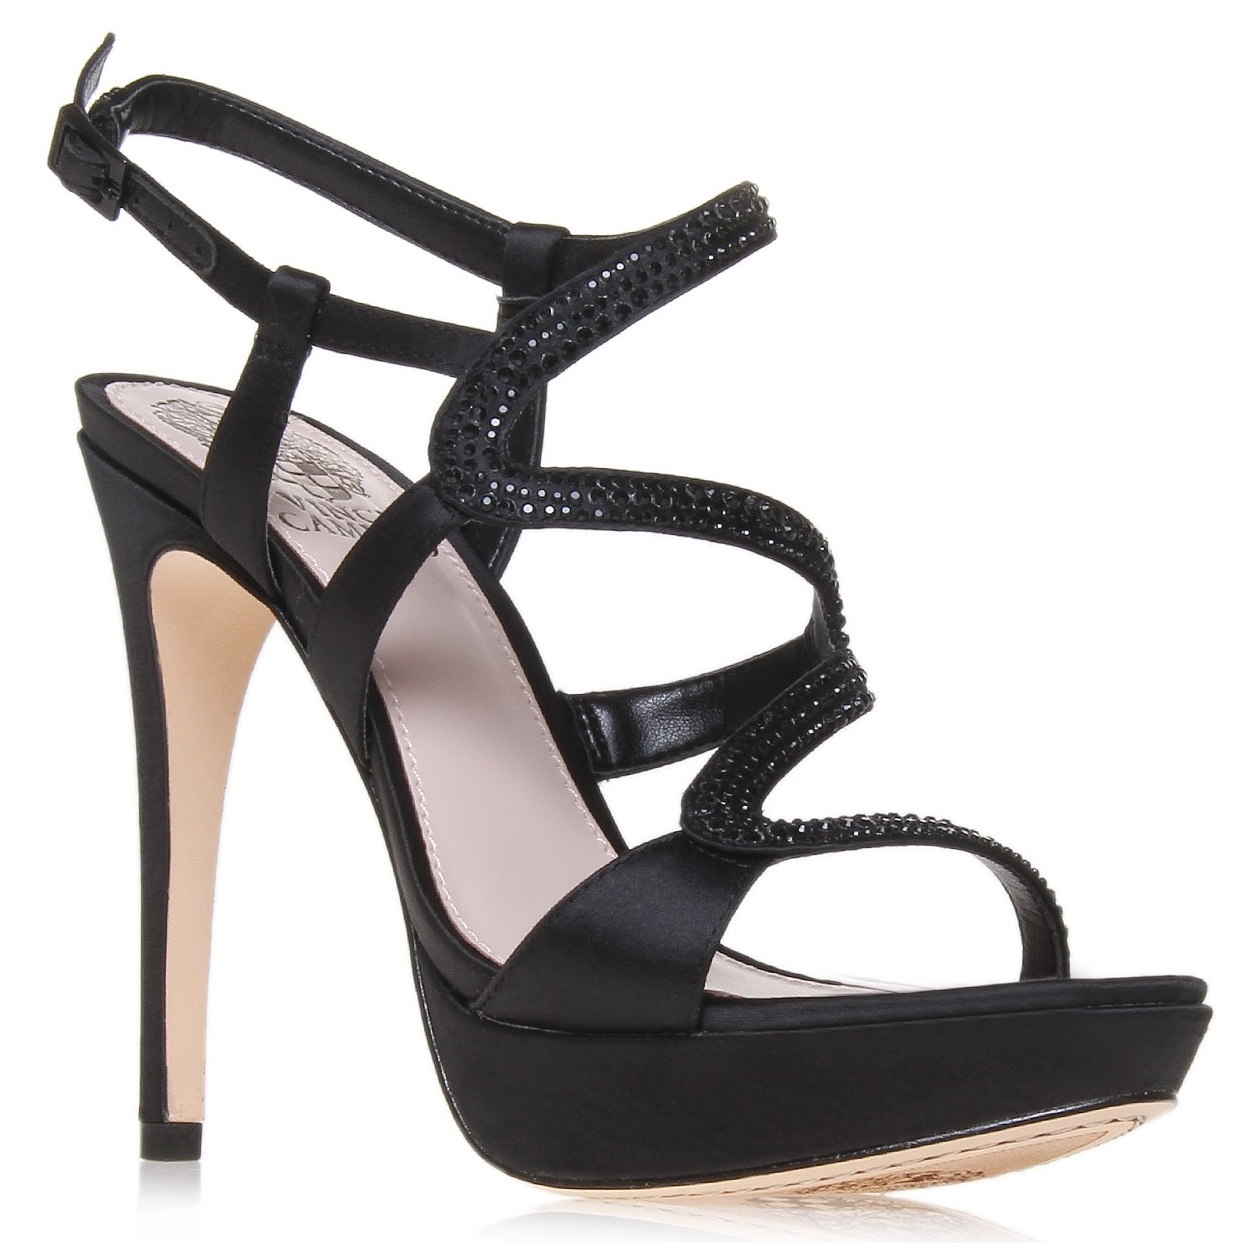 Joilee by Kurt Geiger, High Heels, Black High Heels, Sexy Shoes